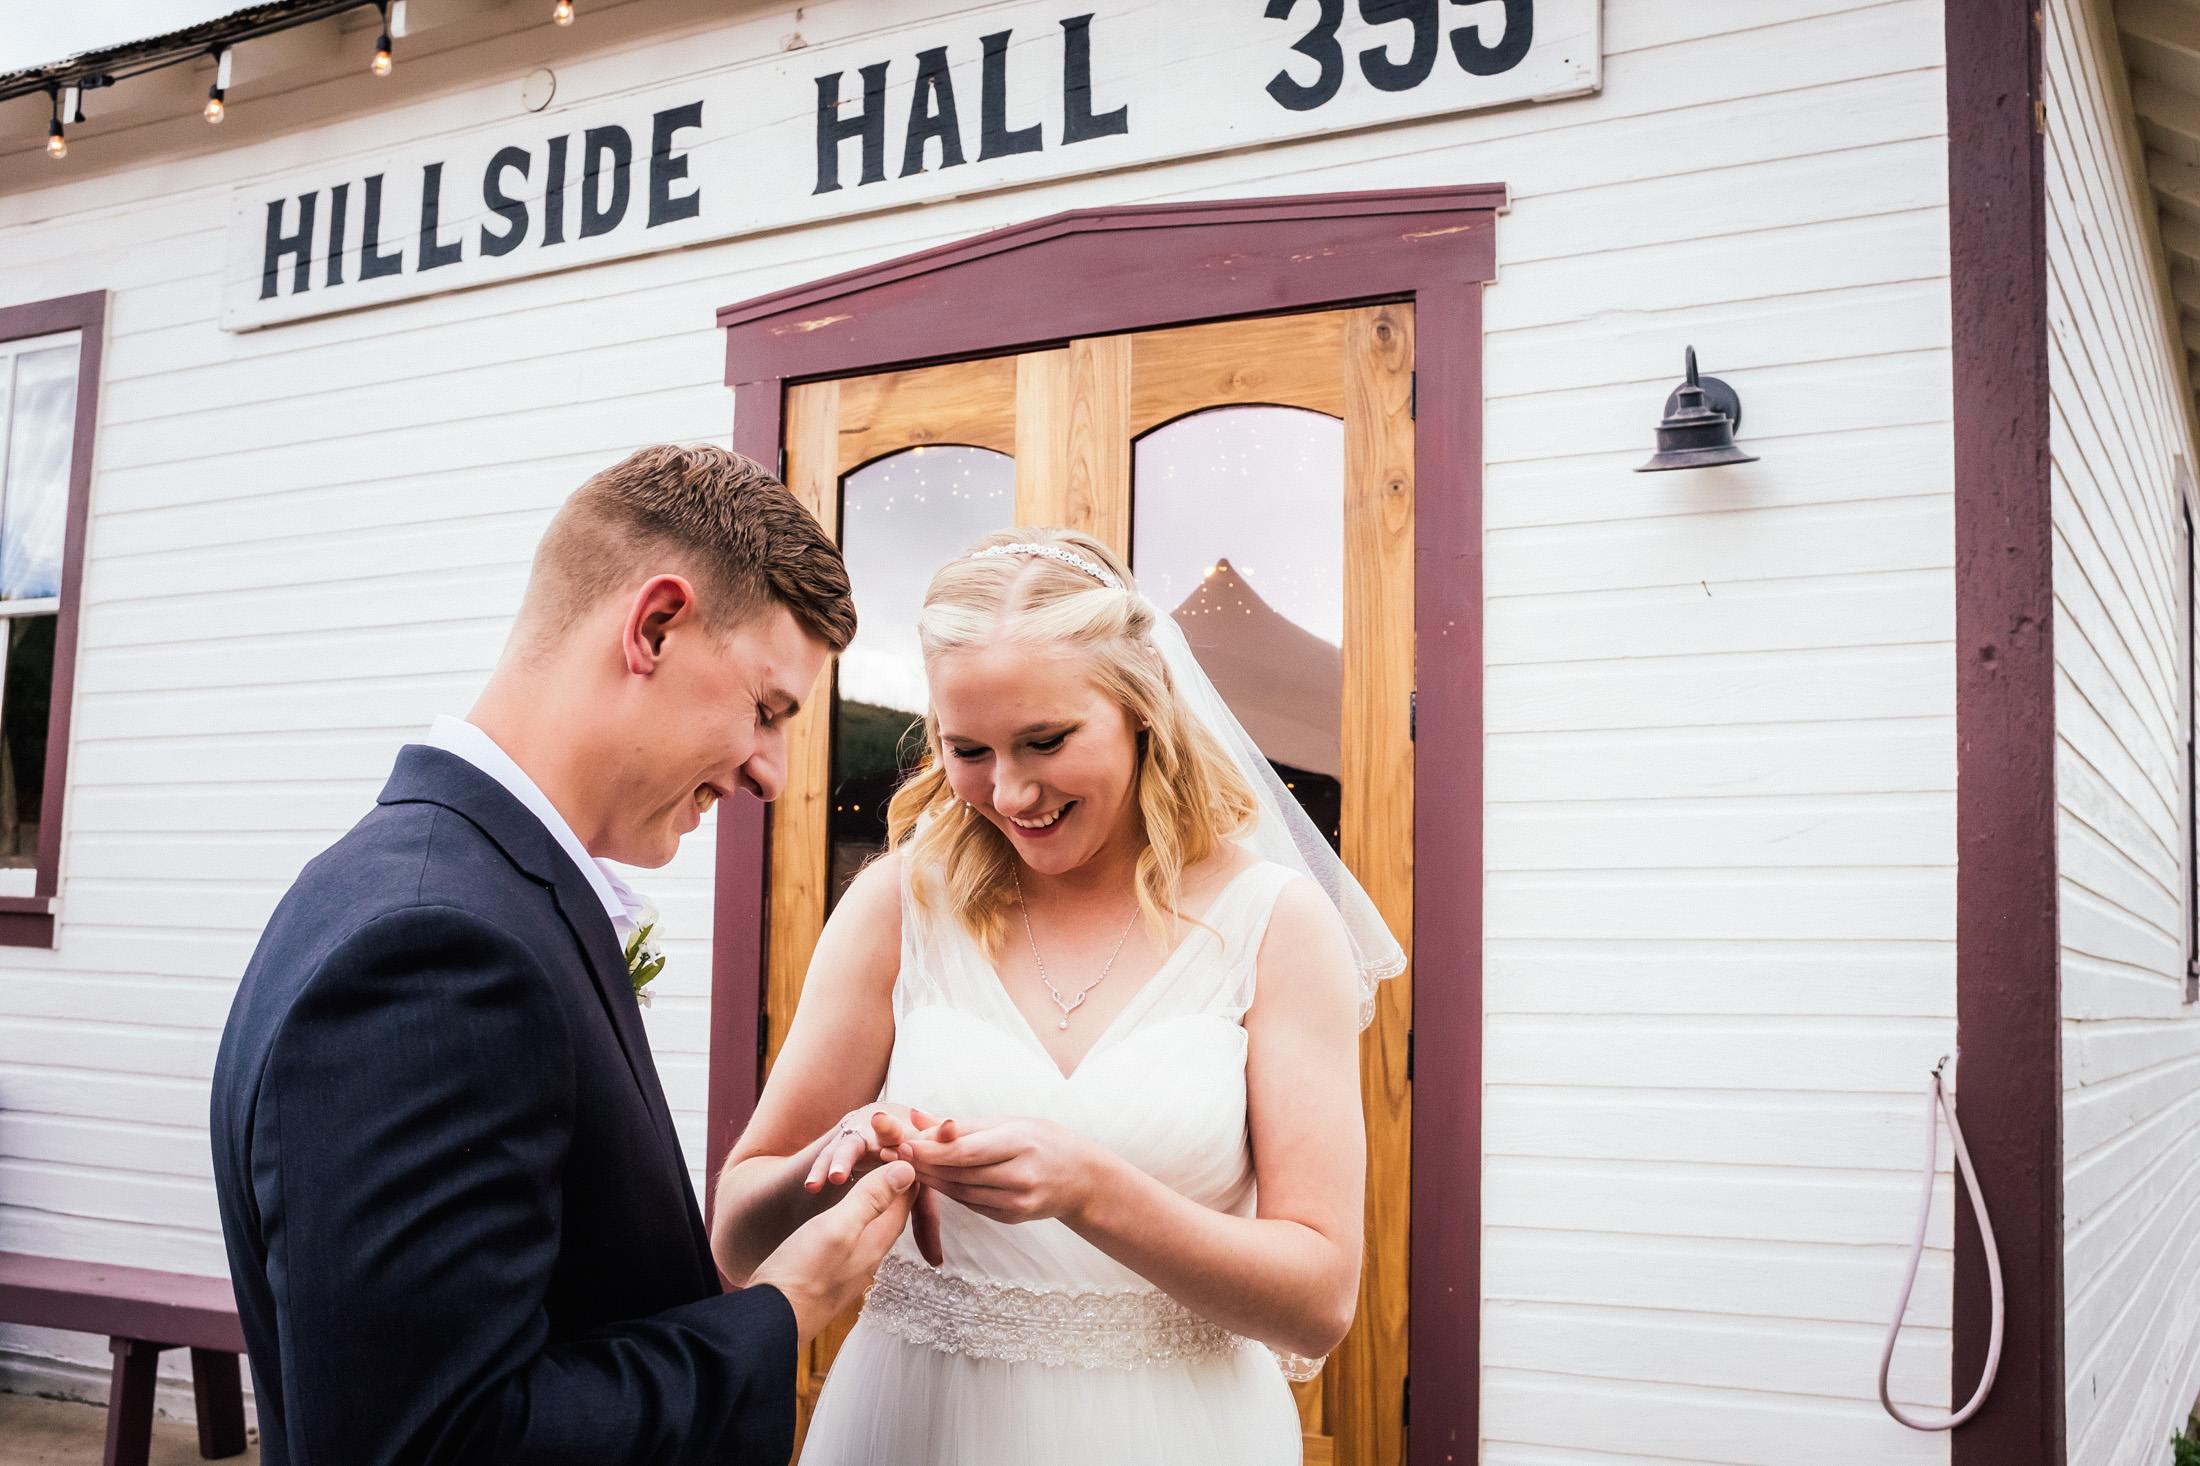 Bride and groom looking at wedding rings outside banquet hall at Willow Vale Events.